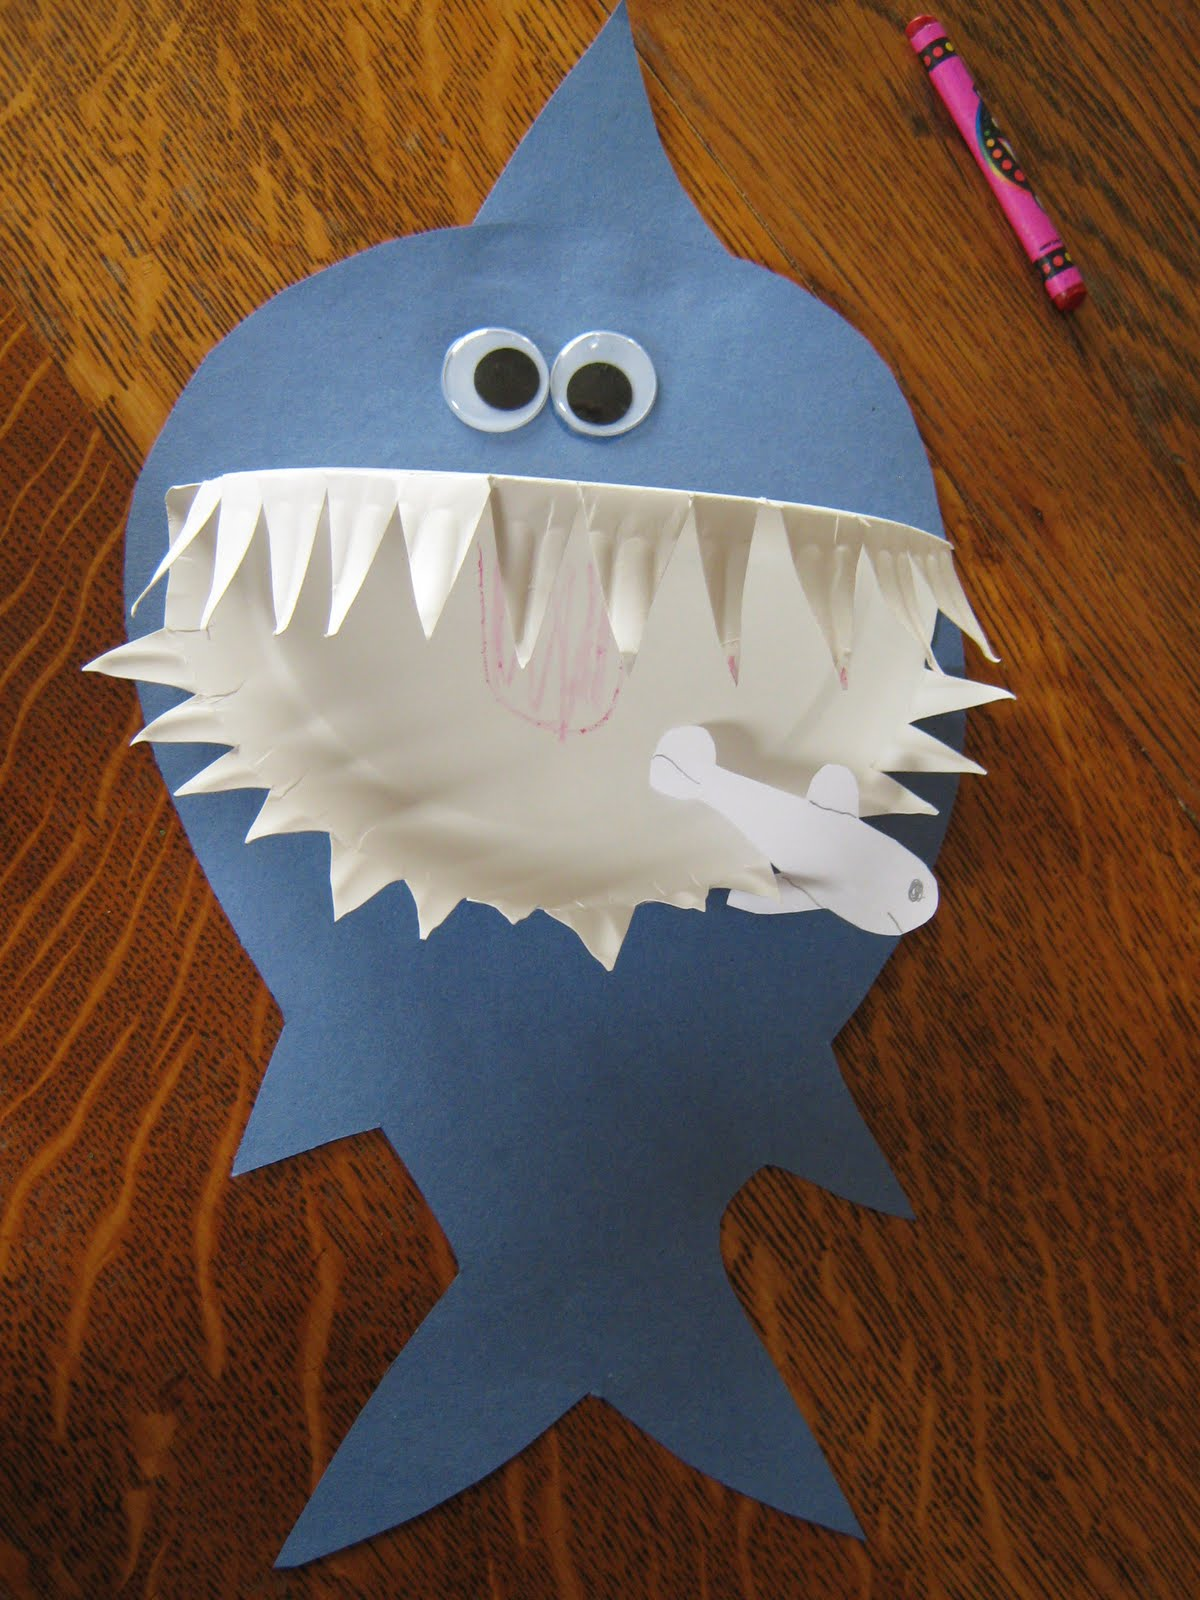 Paper Crafts For Kids Ideas Part - 48: Paper Plate Crafts